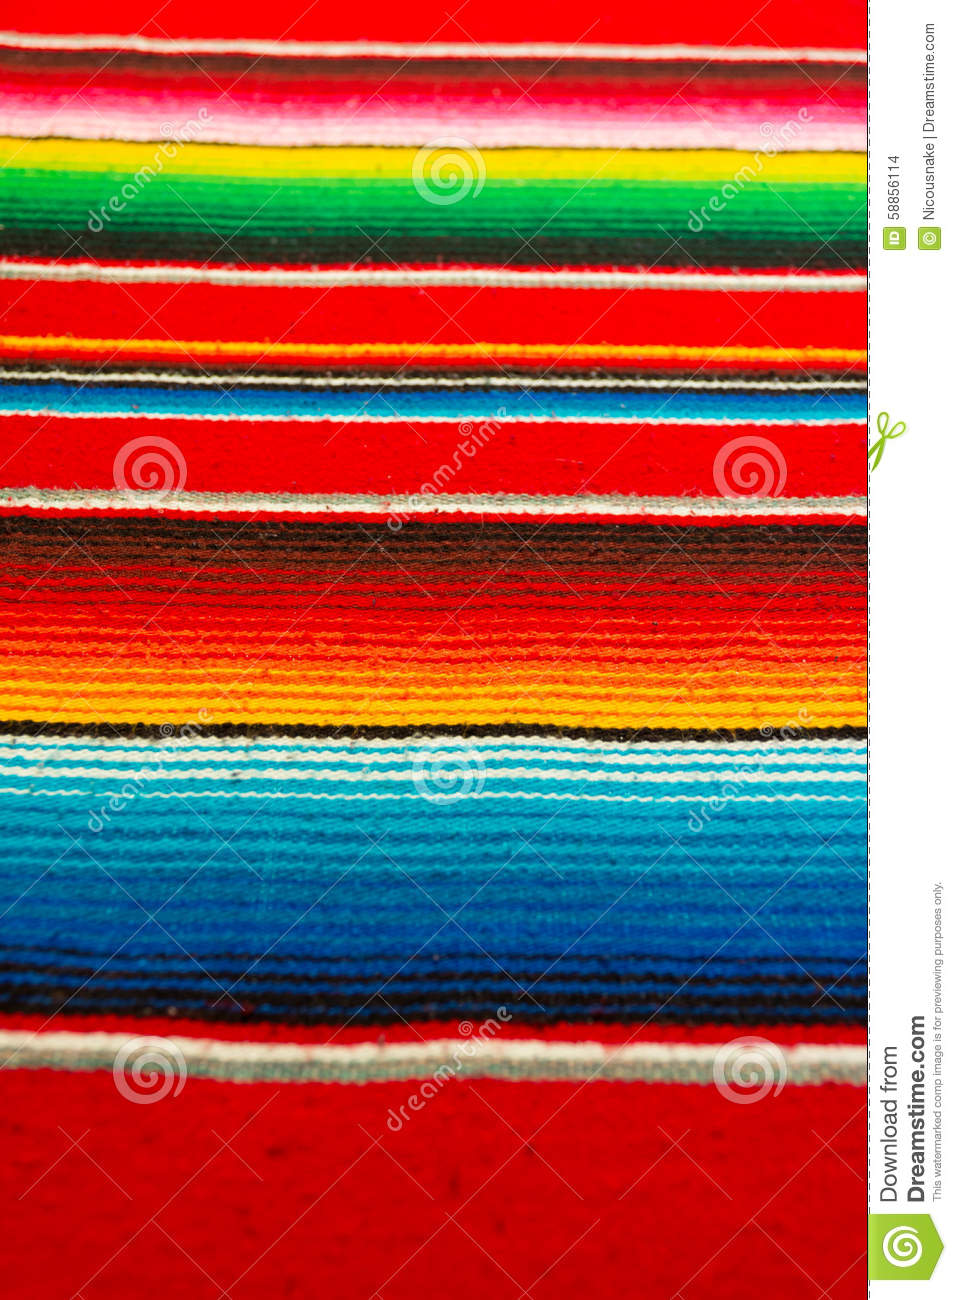 Mexican Poncho Stock Photo - Image: 58856114 Mexican Blanket Texture